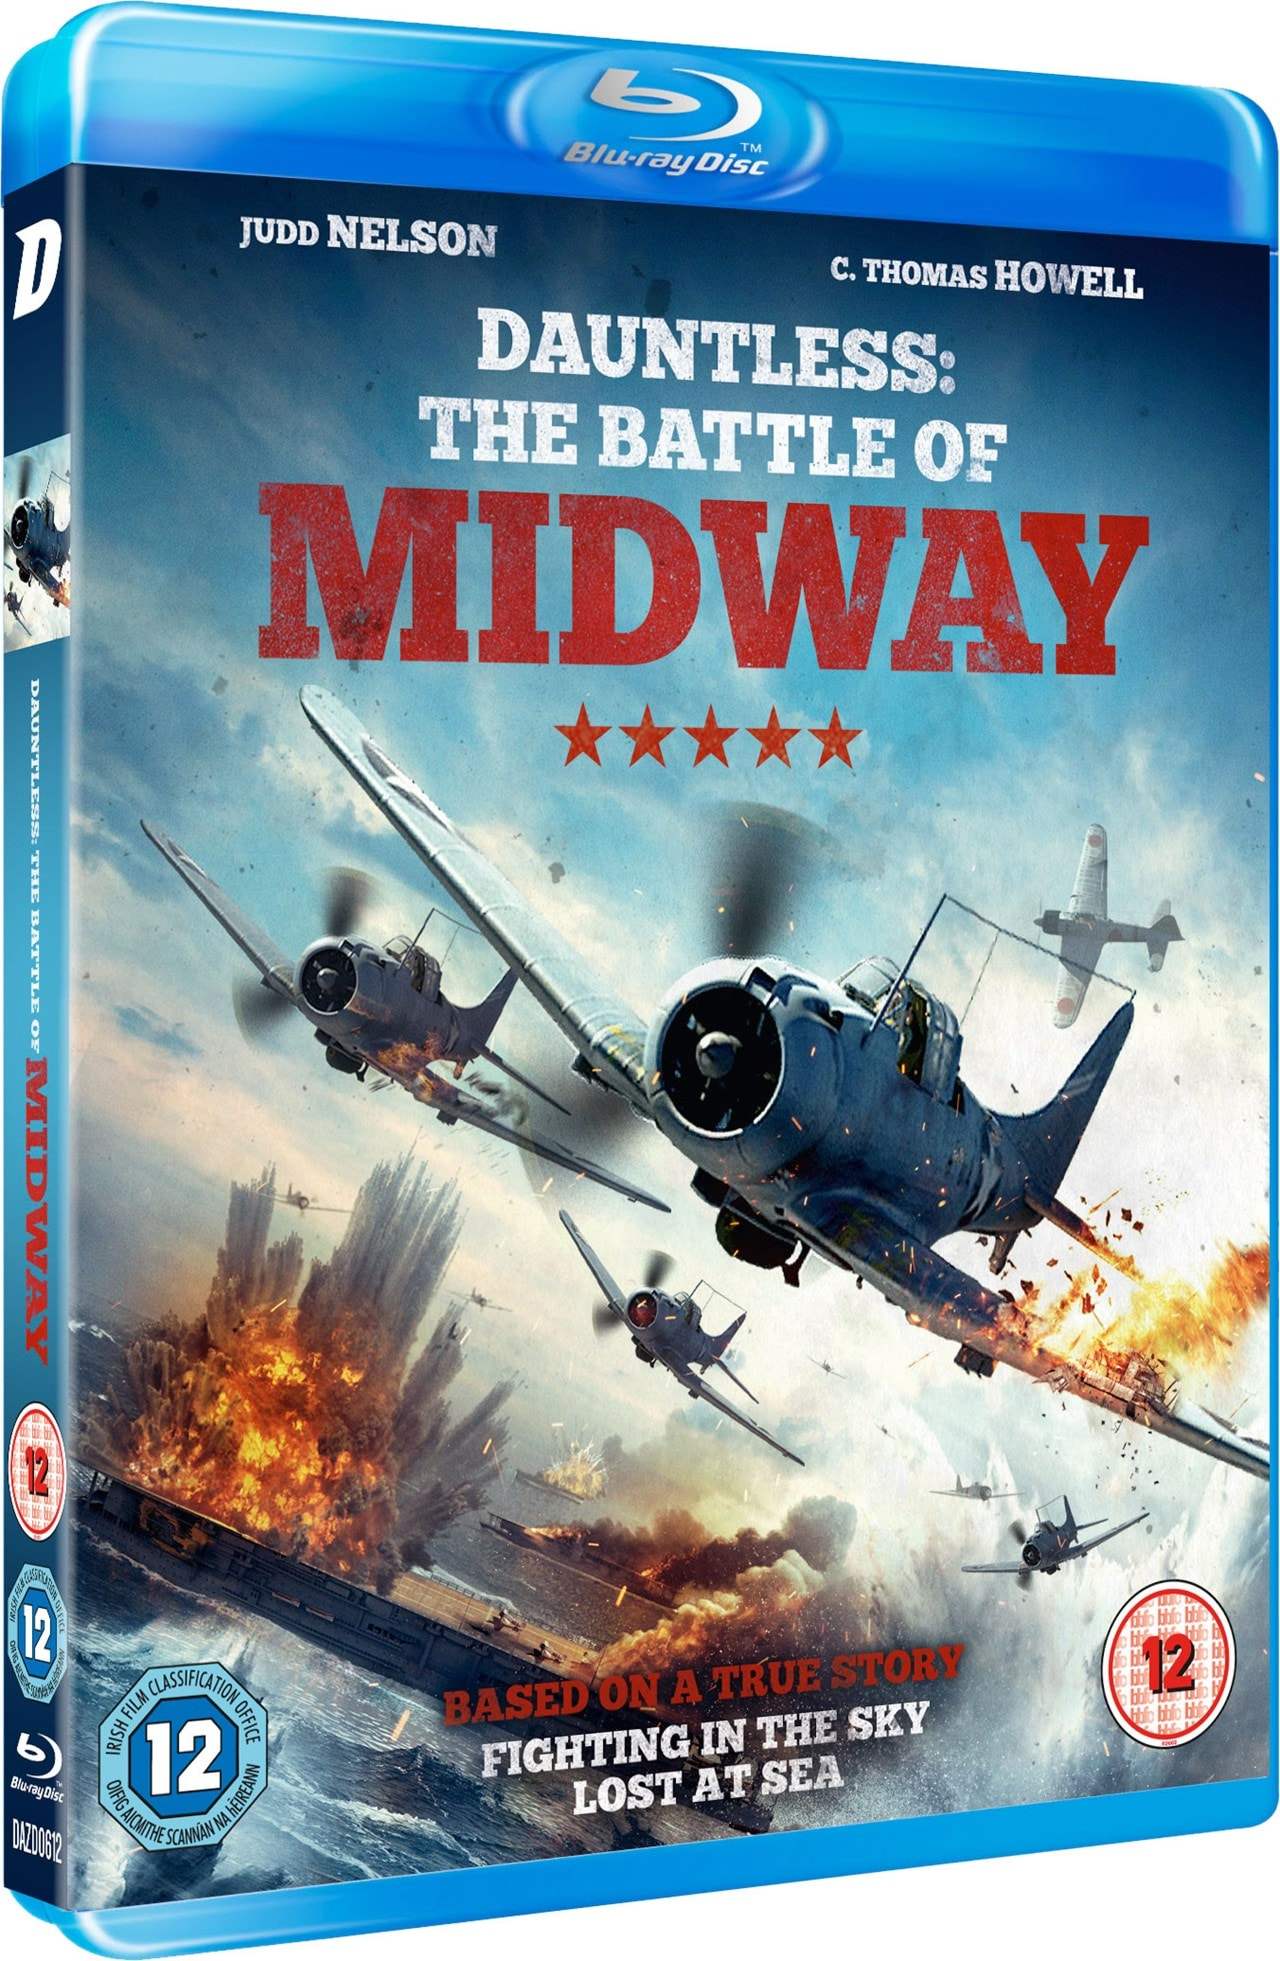 Dauntless: The Battle of Midway - 2